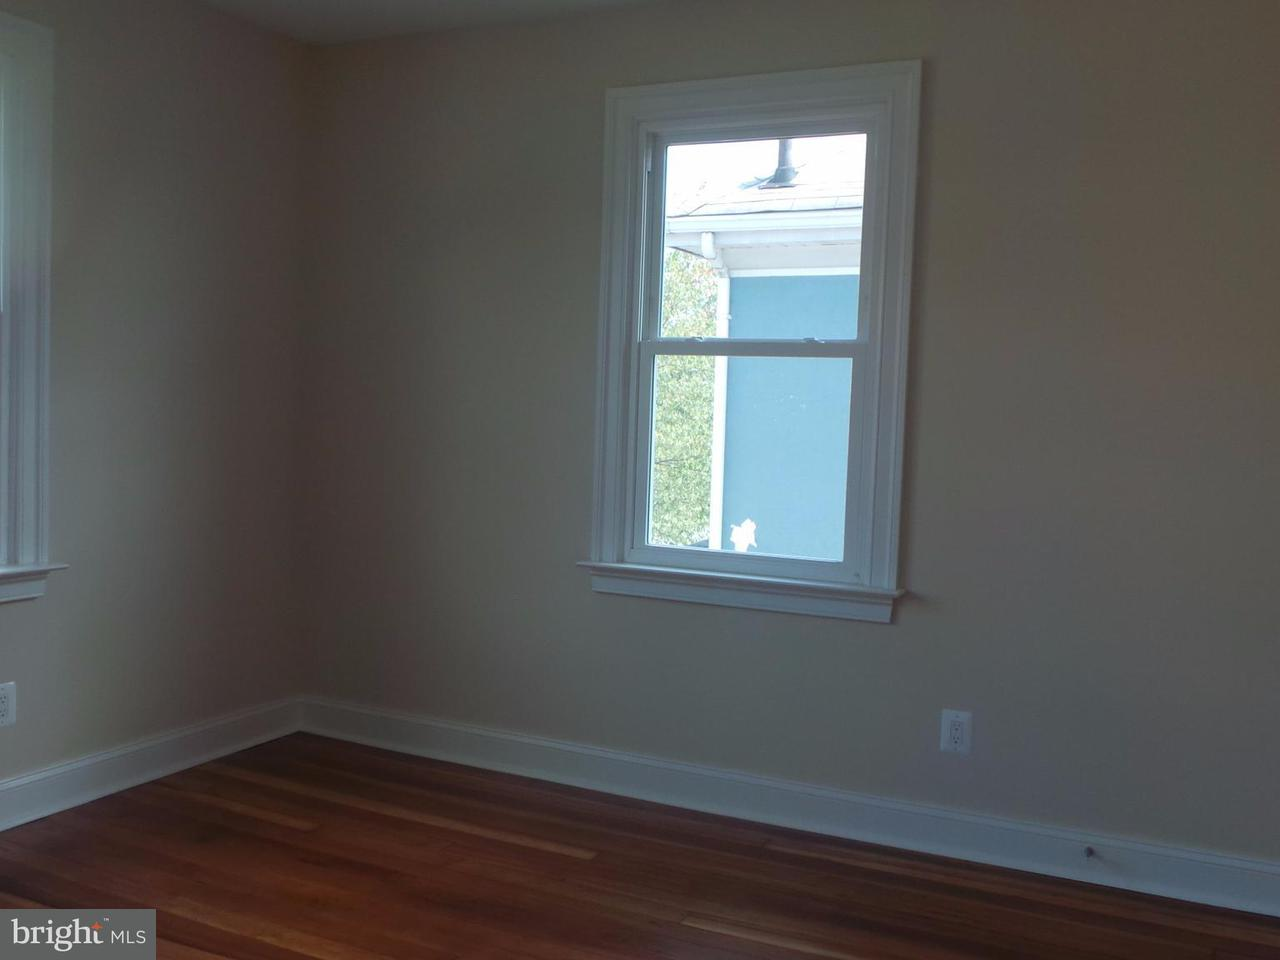 Additional photo for property listing at 814 Wolfe Street 814 Wolfe Street Fredericksburg, 弗吉尼亚州 22401 美国